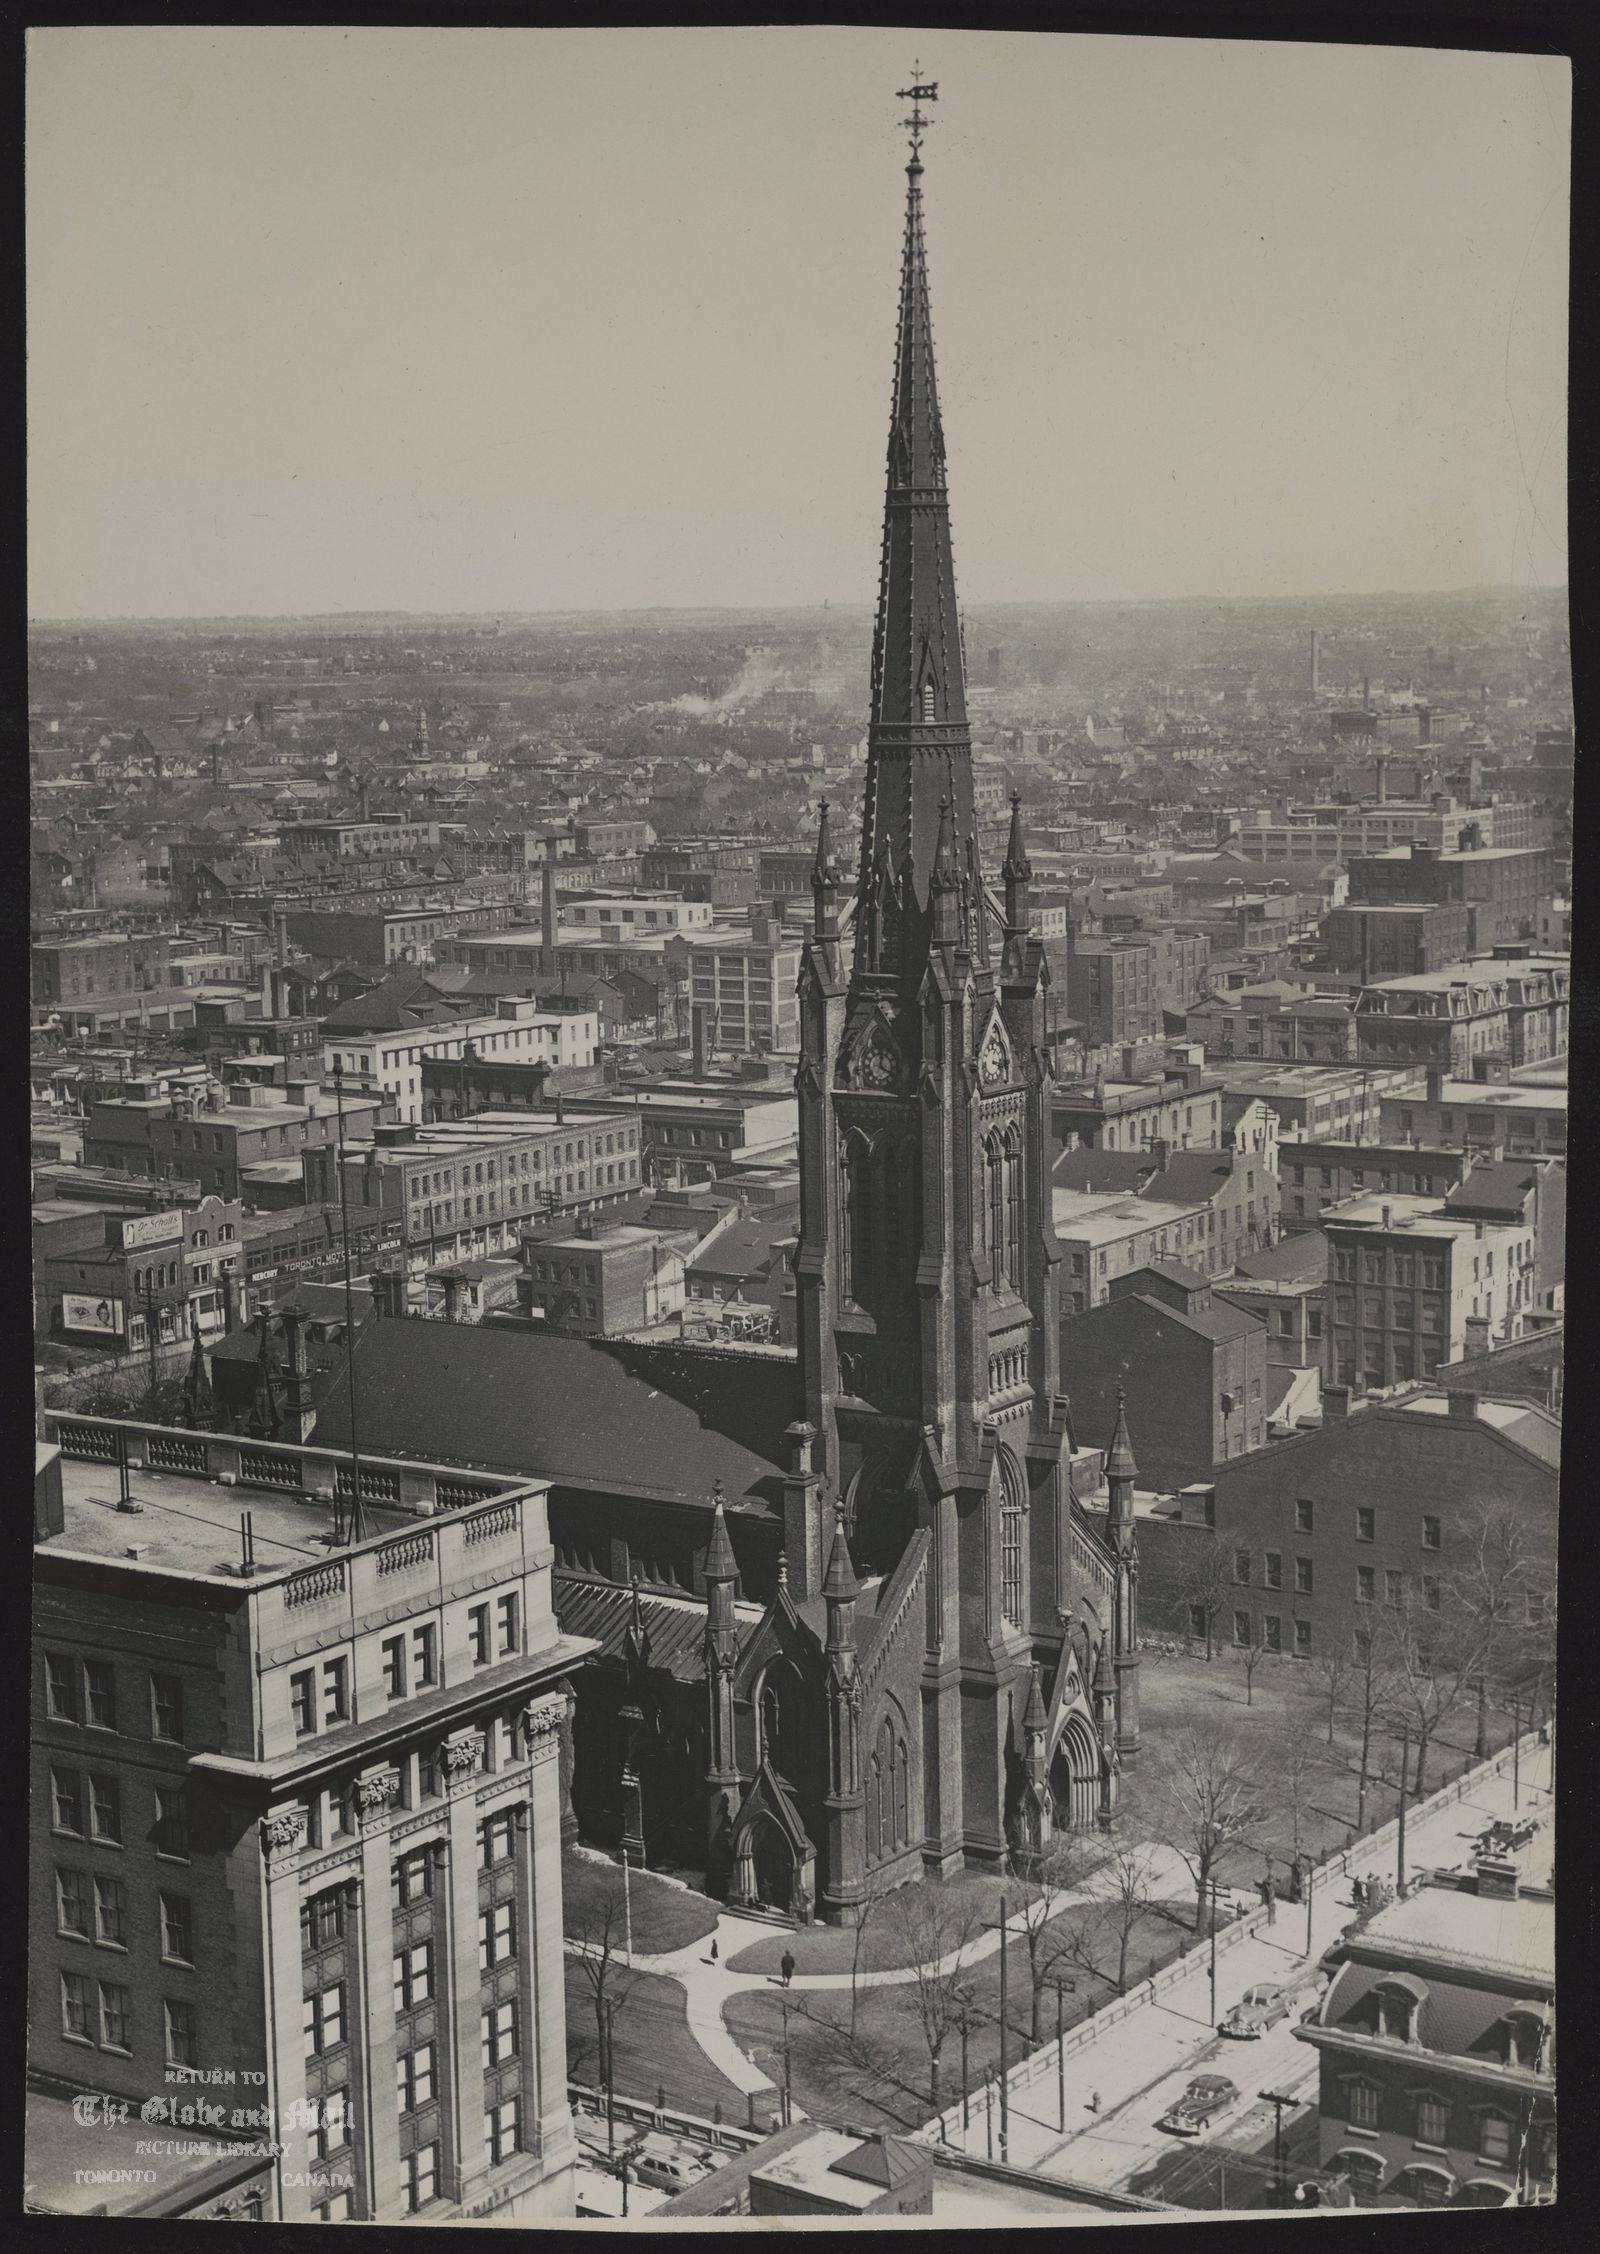 The notes transcribed from the back of this photograph are as follows: ANGLICAN CHURCH OF CANADA Toronto St. James Cathedral King St. 1956 [from King Edward Hotel roof]